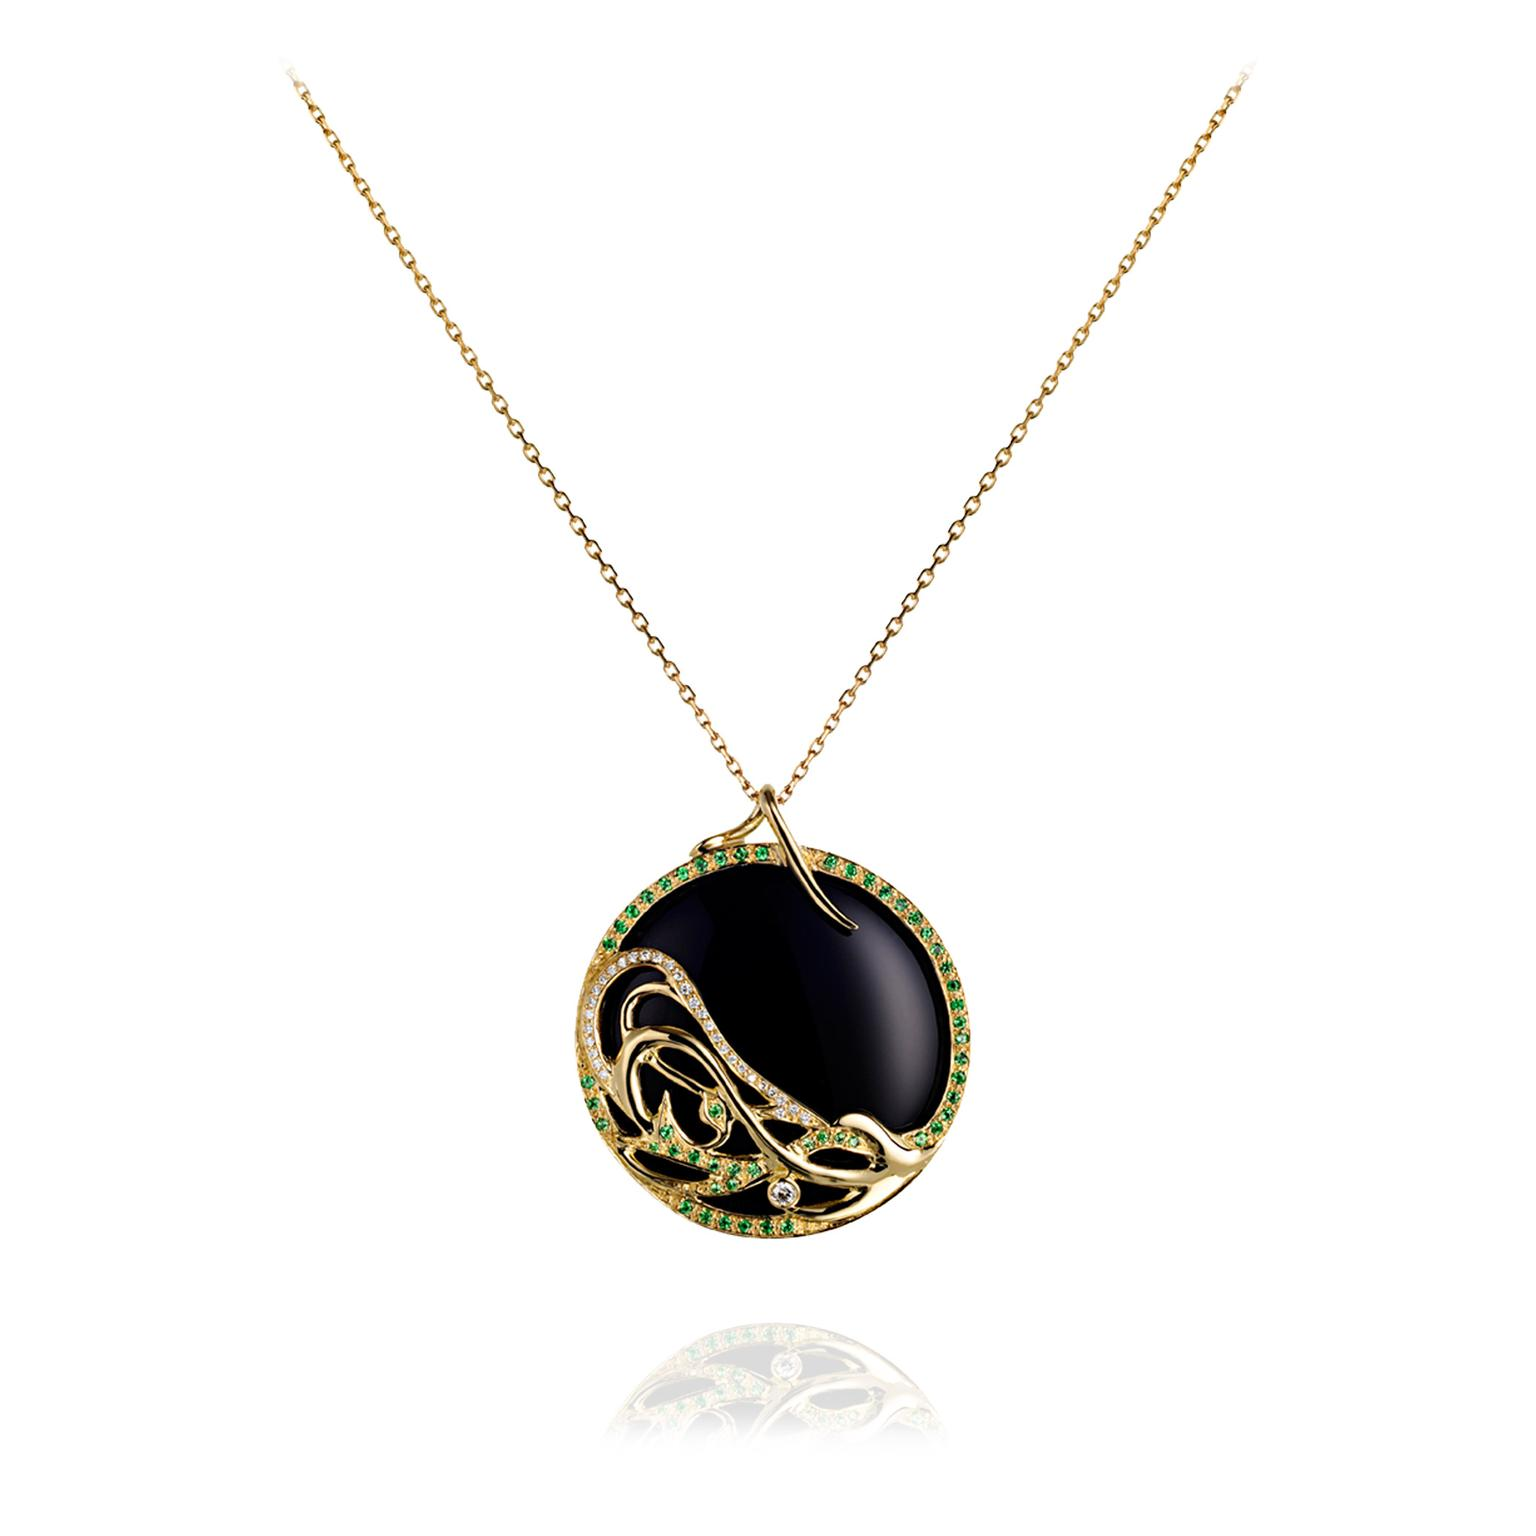 Ana-de-Costa-Tarot-Necklace-zoom